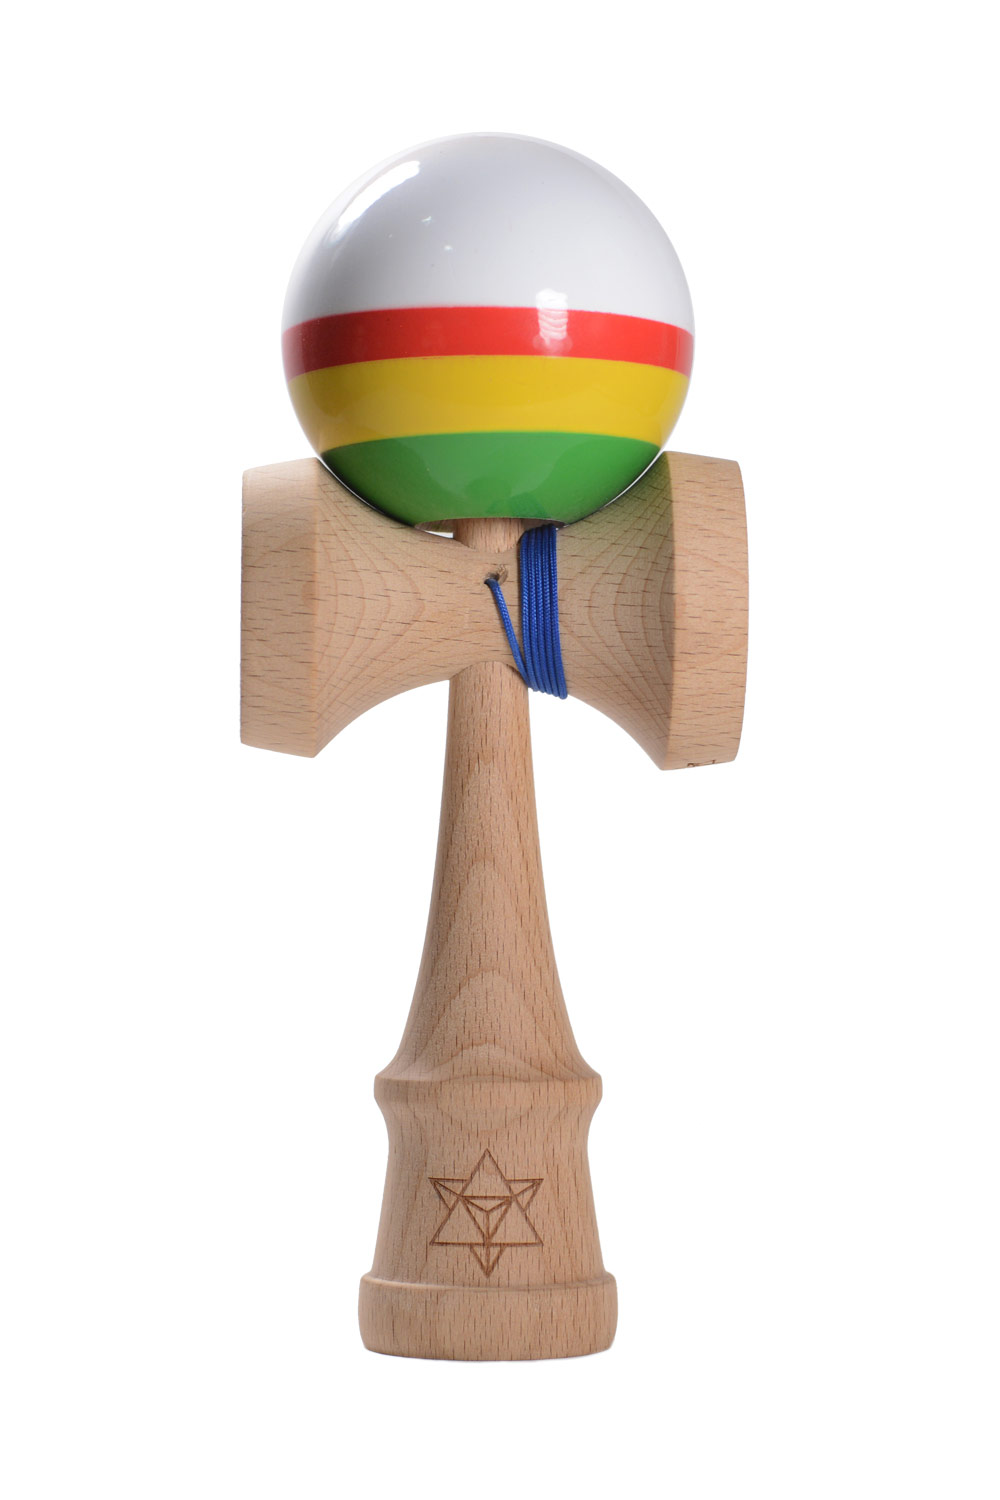 The bob beechwood maple shekel clear kendama israel for The beechwood